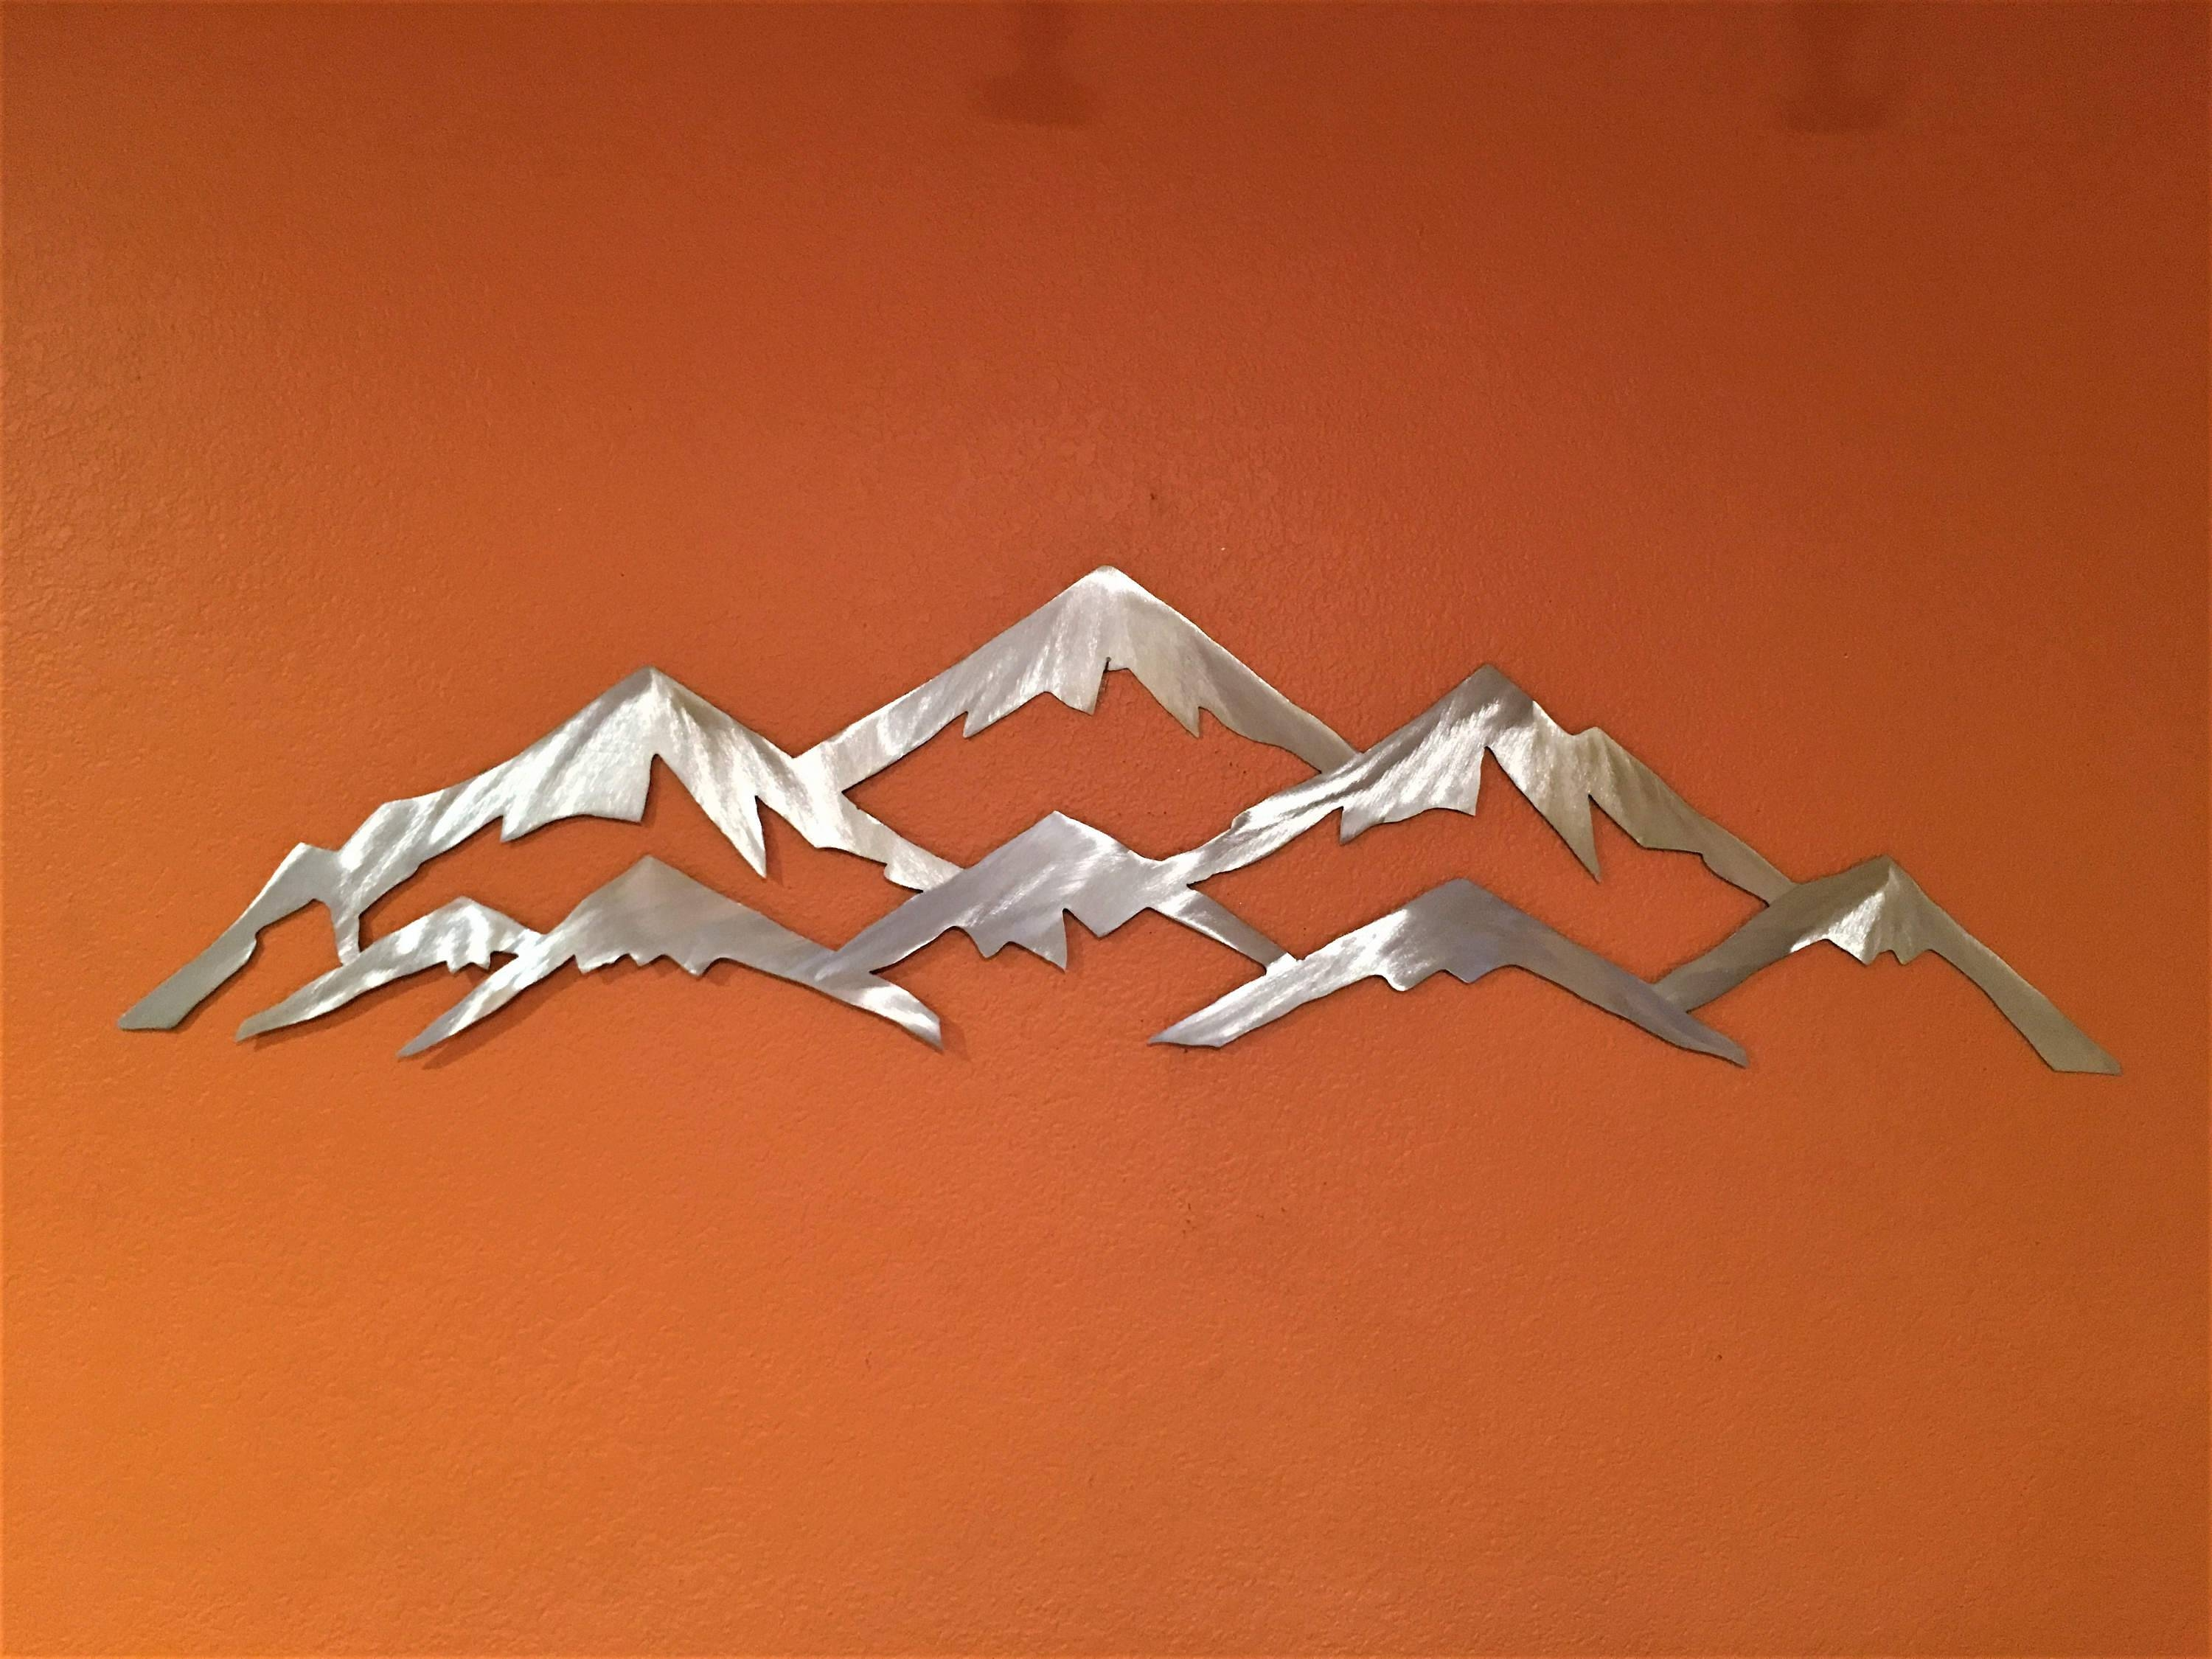 3 Ft Vail Ski Resort. Metal Wall Art Mountains. Nature Landscape Intended For Best And Newest Mountains Metal Wall Art (Gallery 7 of 20)